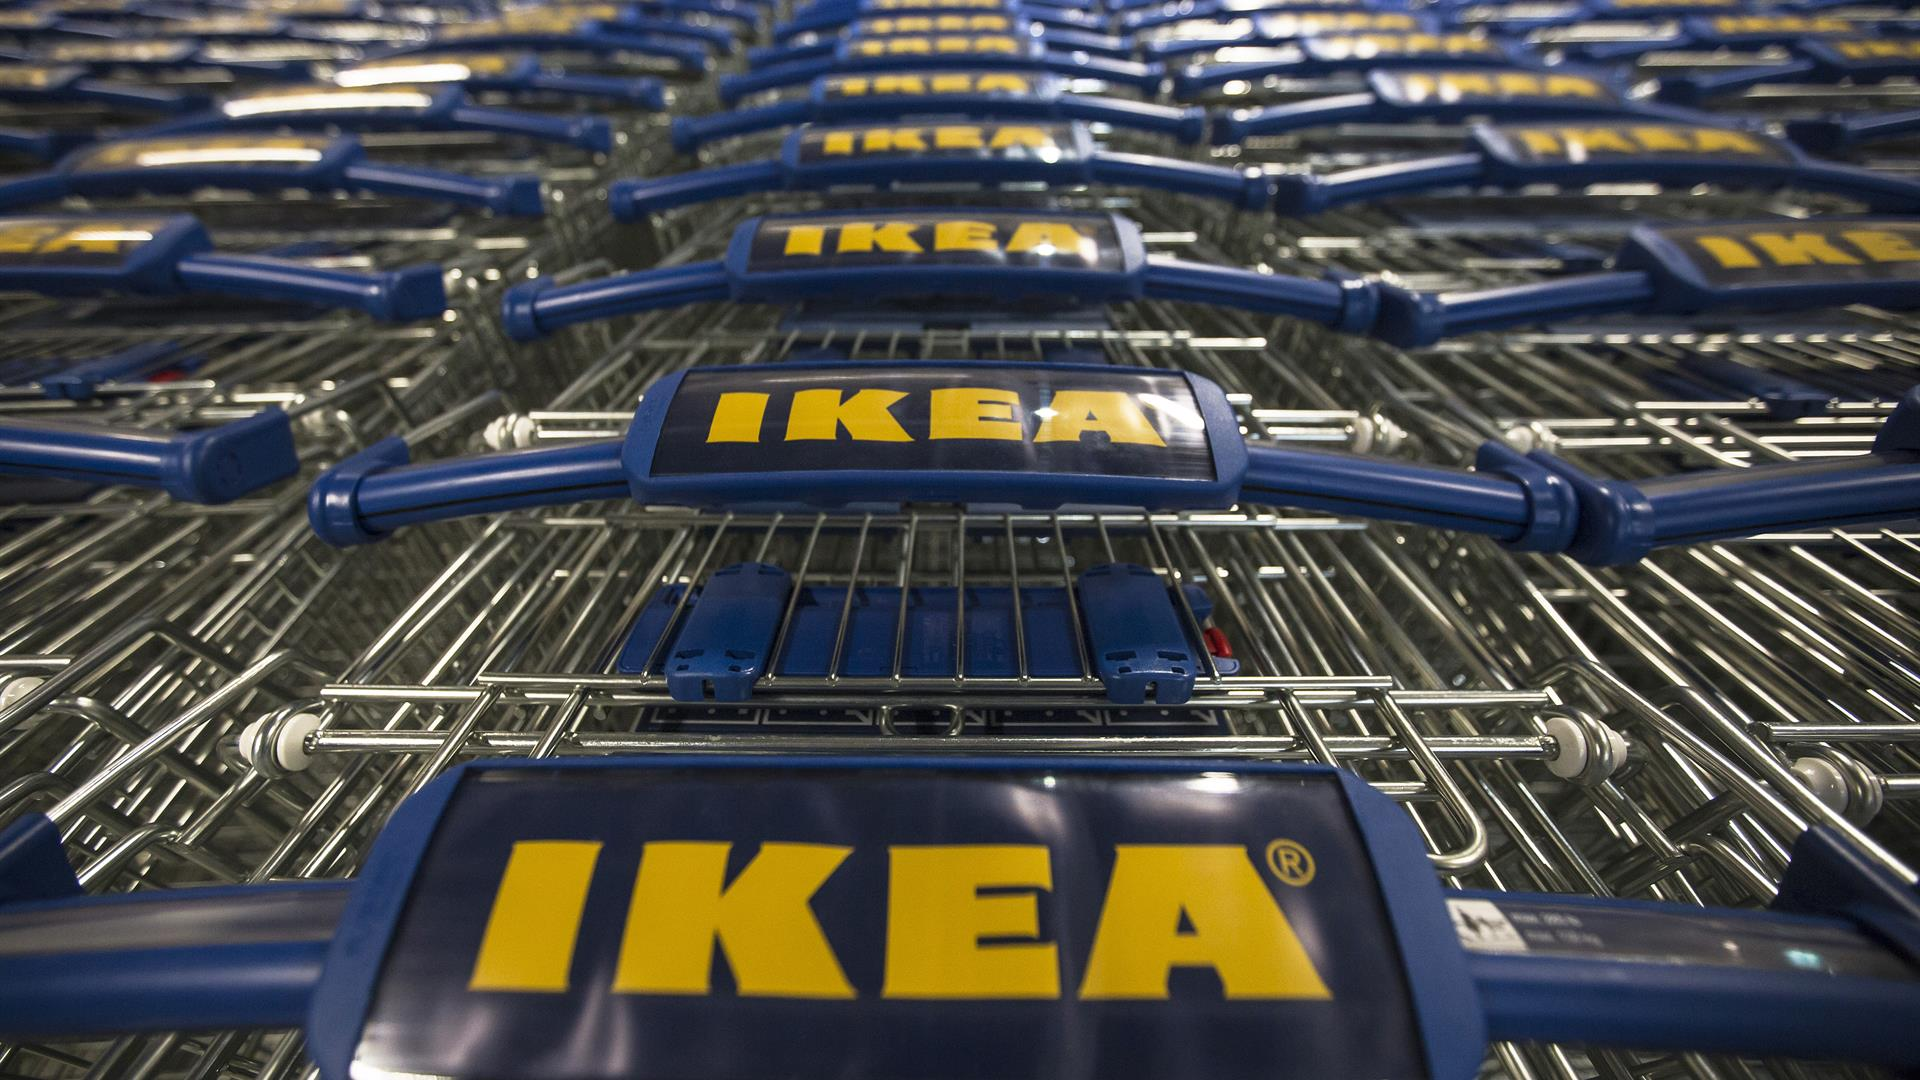 Ikea Store Ban Single Use Plastics